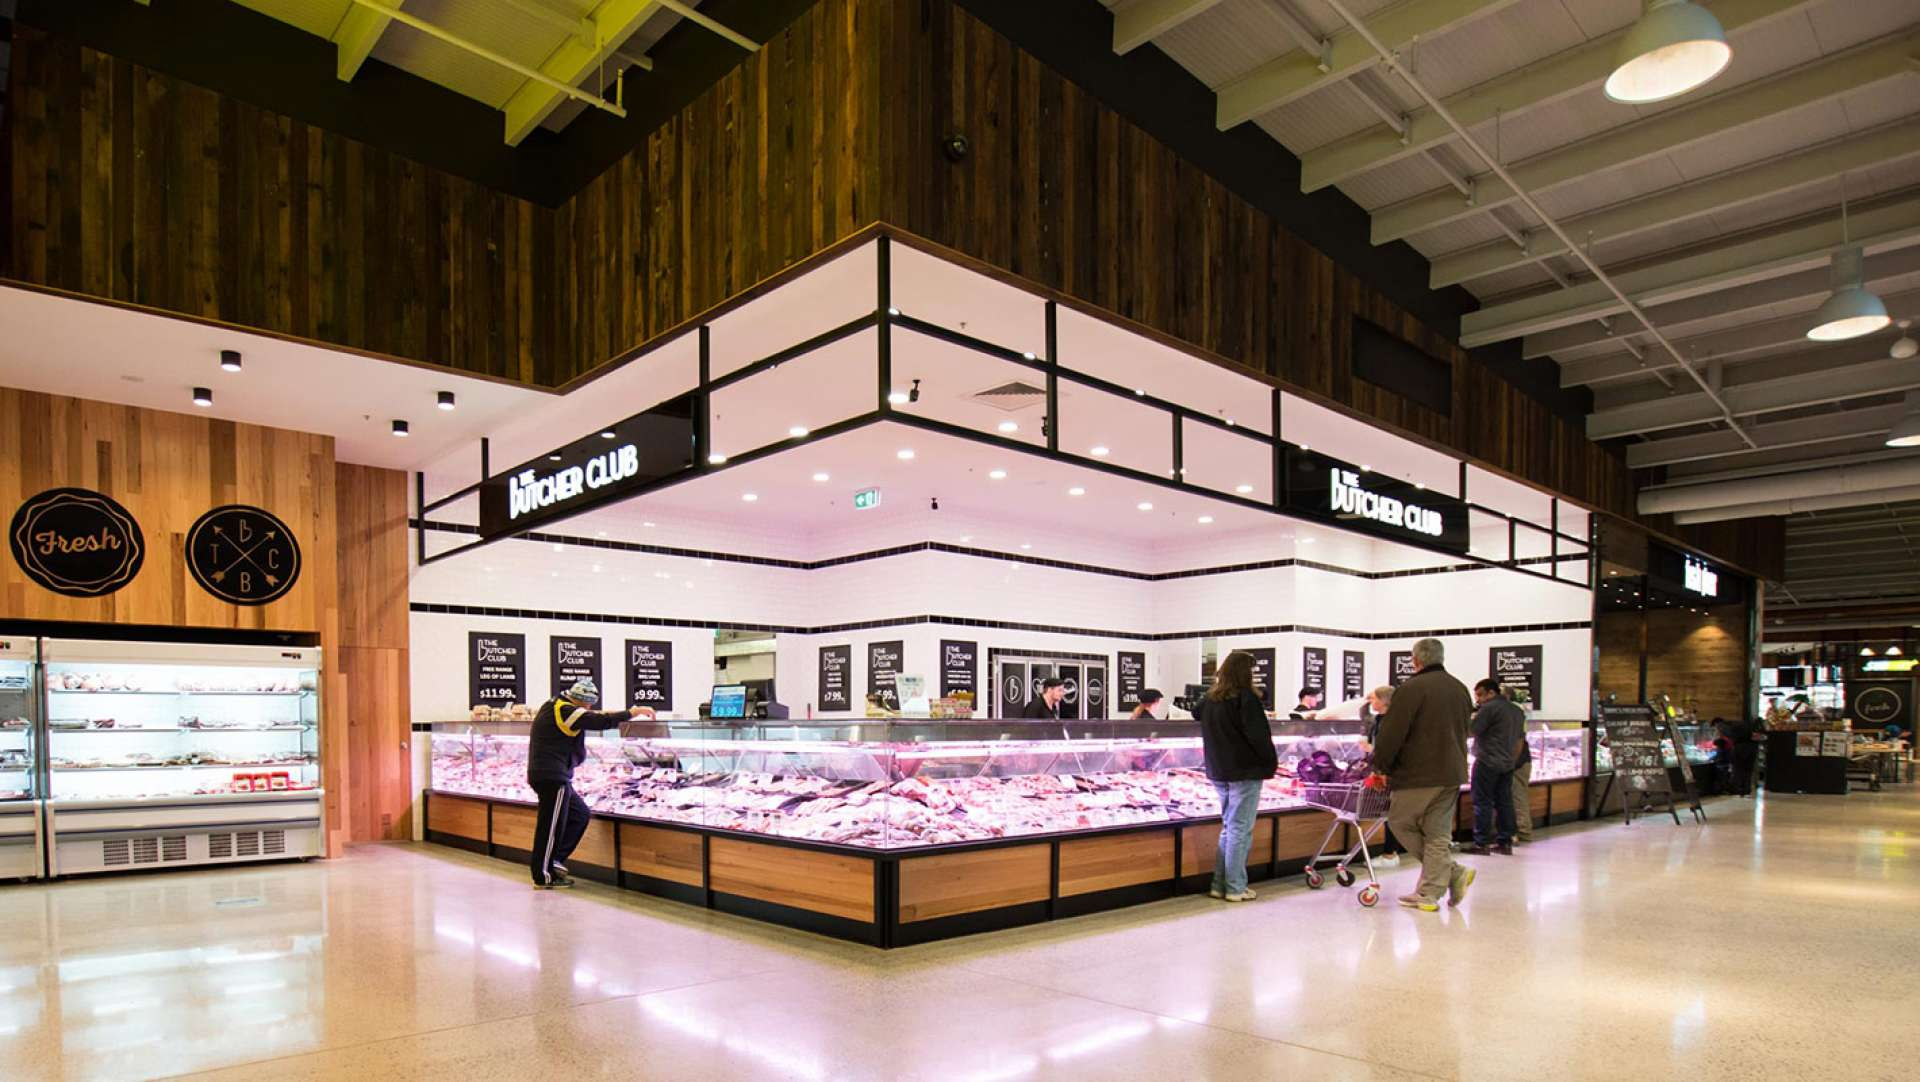 WORKING PROGRESS: The Butchers Club (A Butcher like no other) Store Roll Out Design by Studio Equator